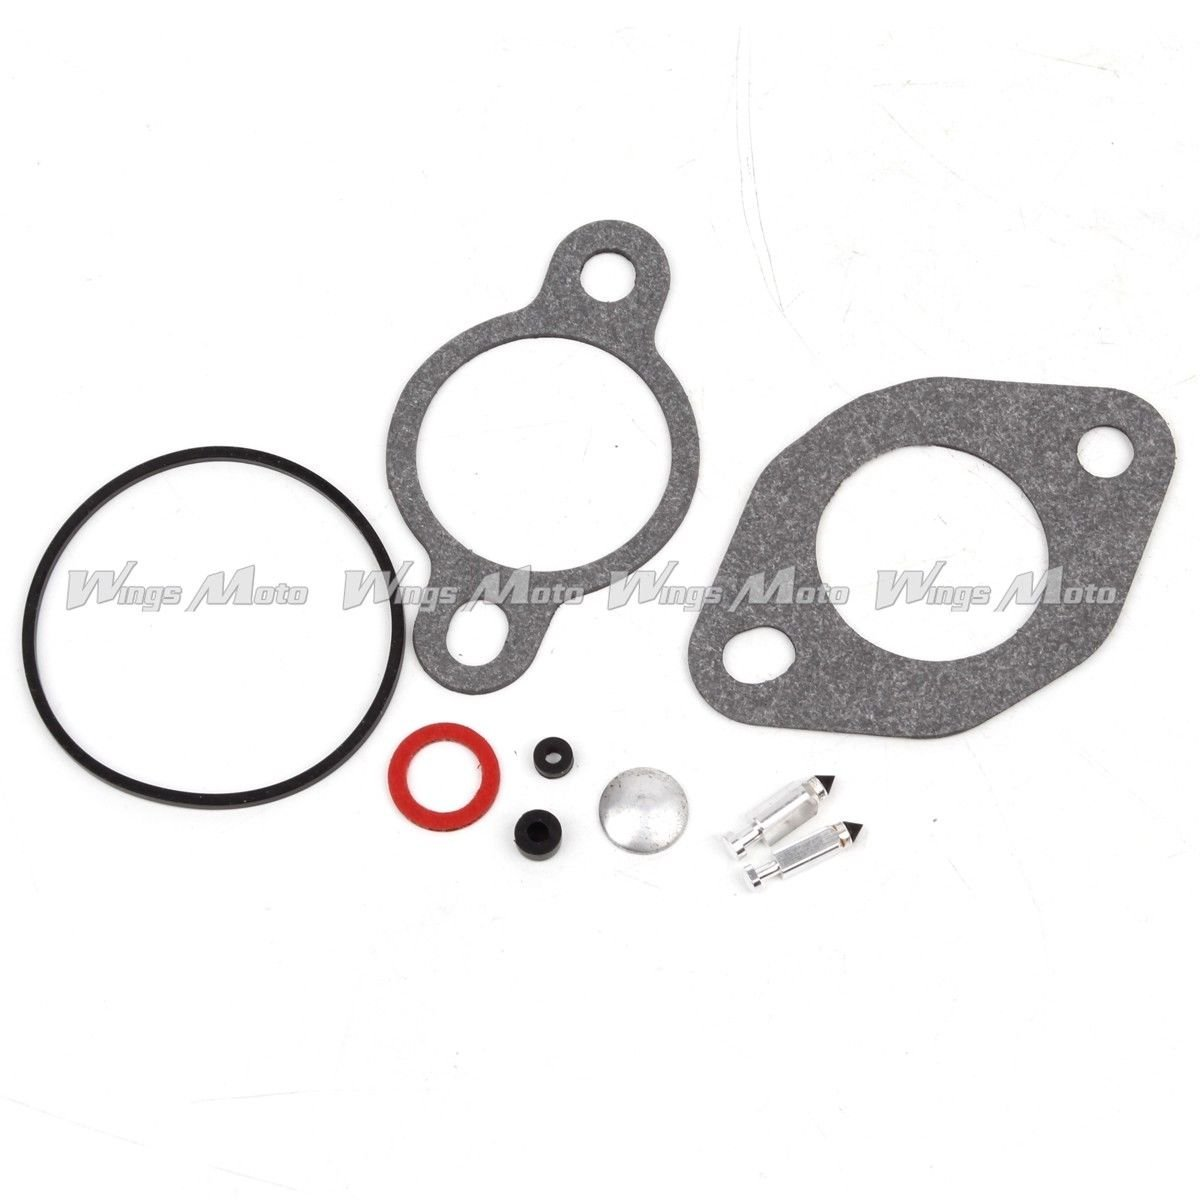 Wingsmoto Carb Repair Carburetor Rebuild Kit for Kohler 1275703-S,12 757 03-S 12-757-03-S,1275703S